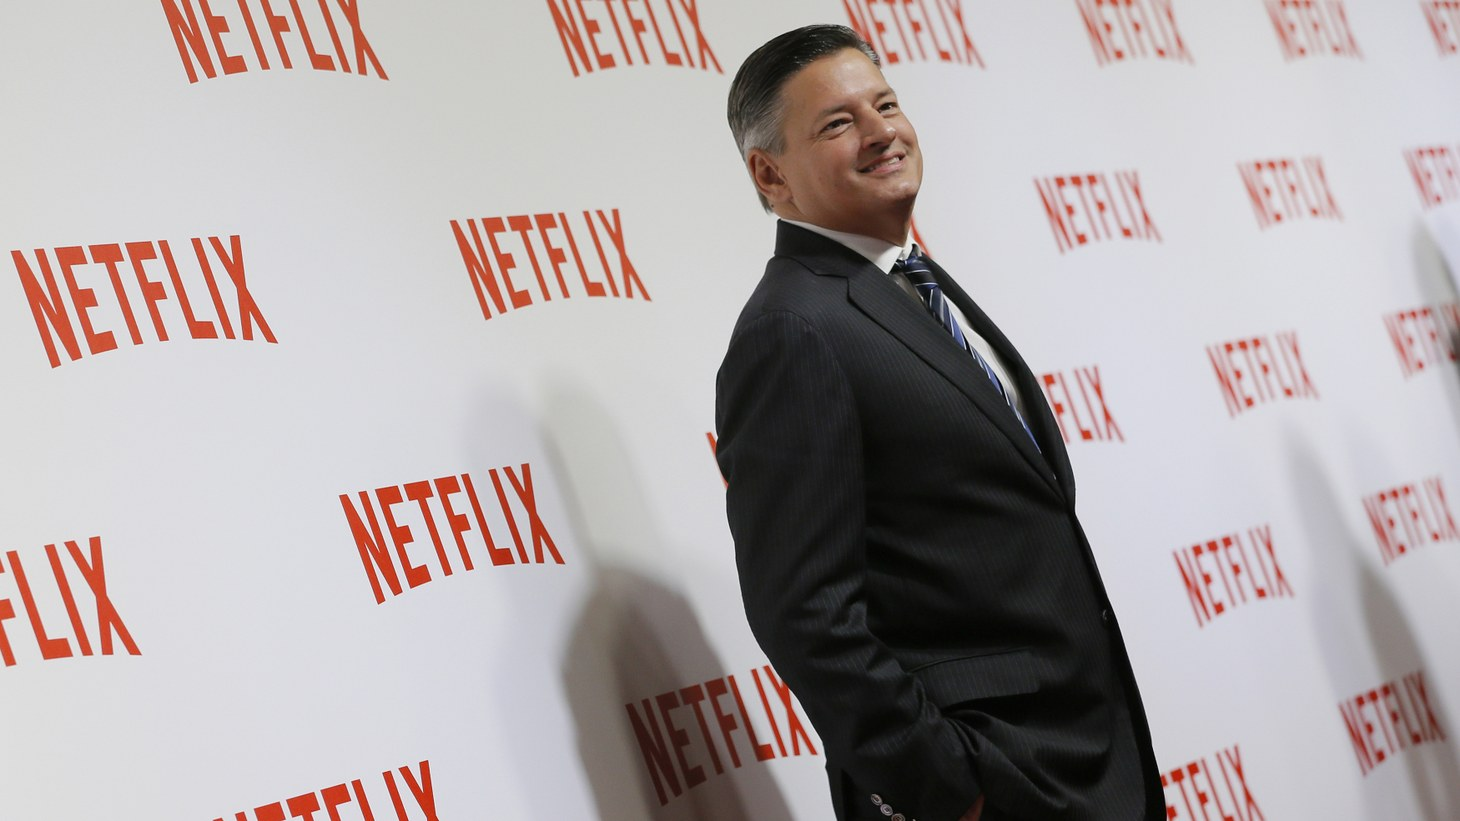 Netflix Co-CEO Ted Sarandos attends a red carpet event in Paris as the company launches its video streaming service in France, September 15, 2014.